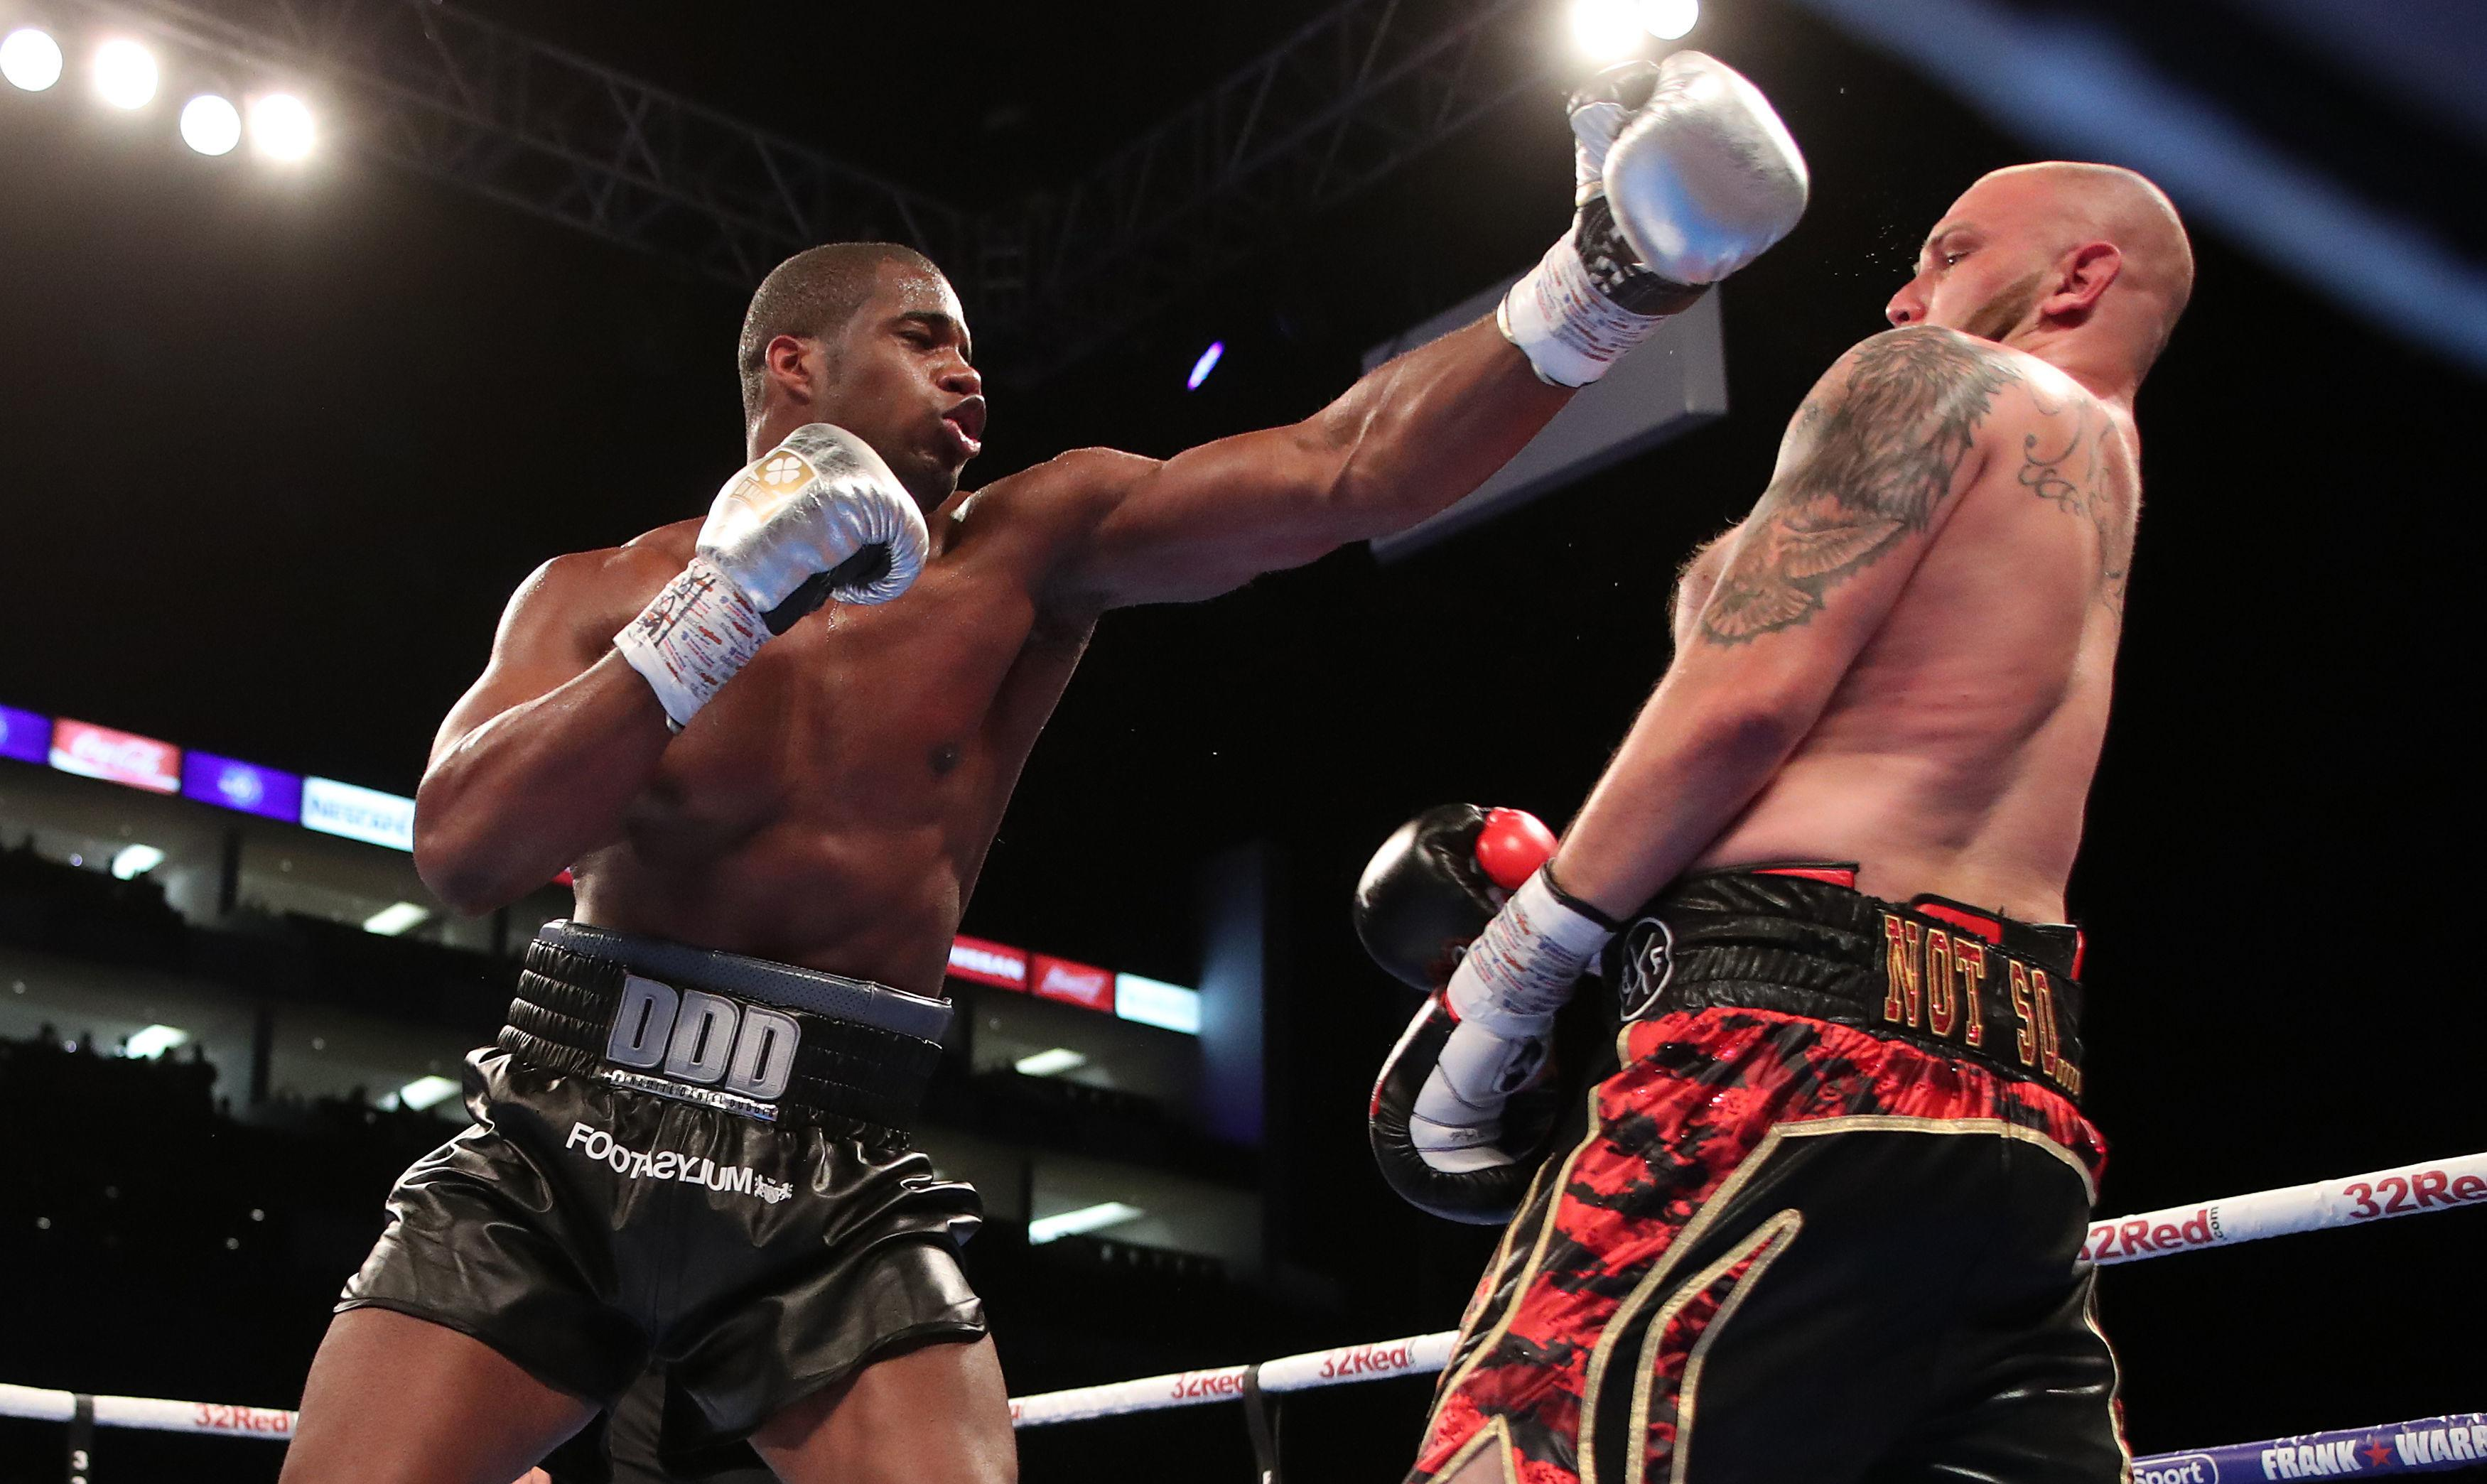 Daniel Dubois cruised past his opponent to win the English title